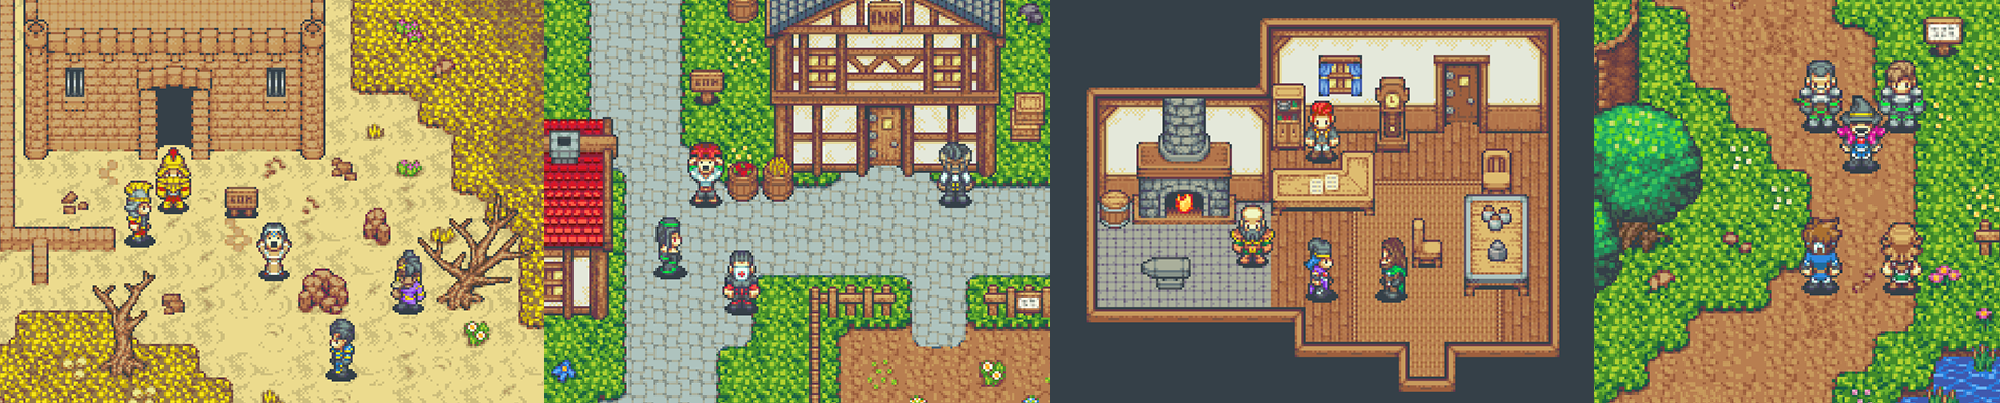 Time Fantasy Retro Rpg Graphics For Game Development